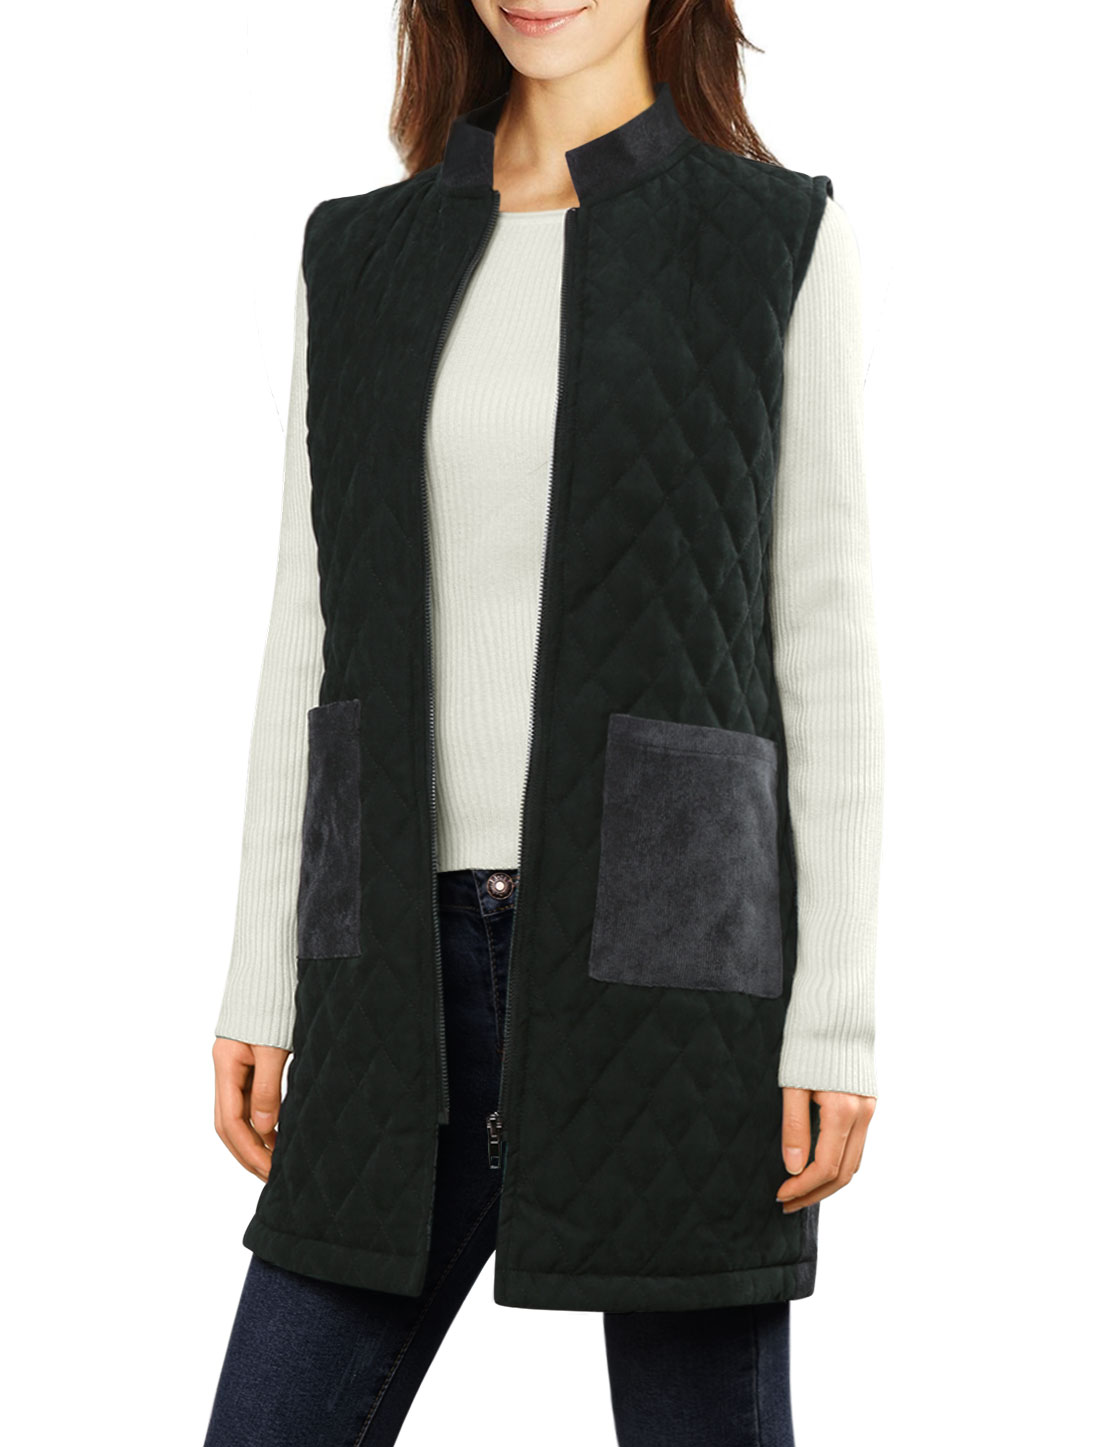 Allegra K Woman Stand Collar Zip Up Corduroy Quilted Tunic Vest Charcoal Gray XS